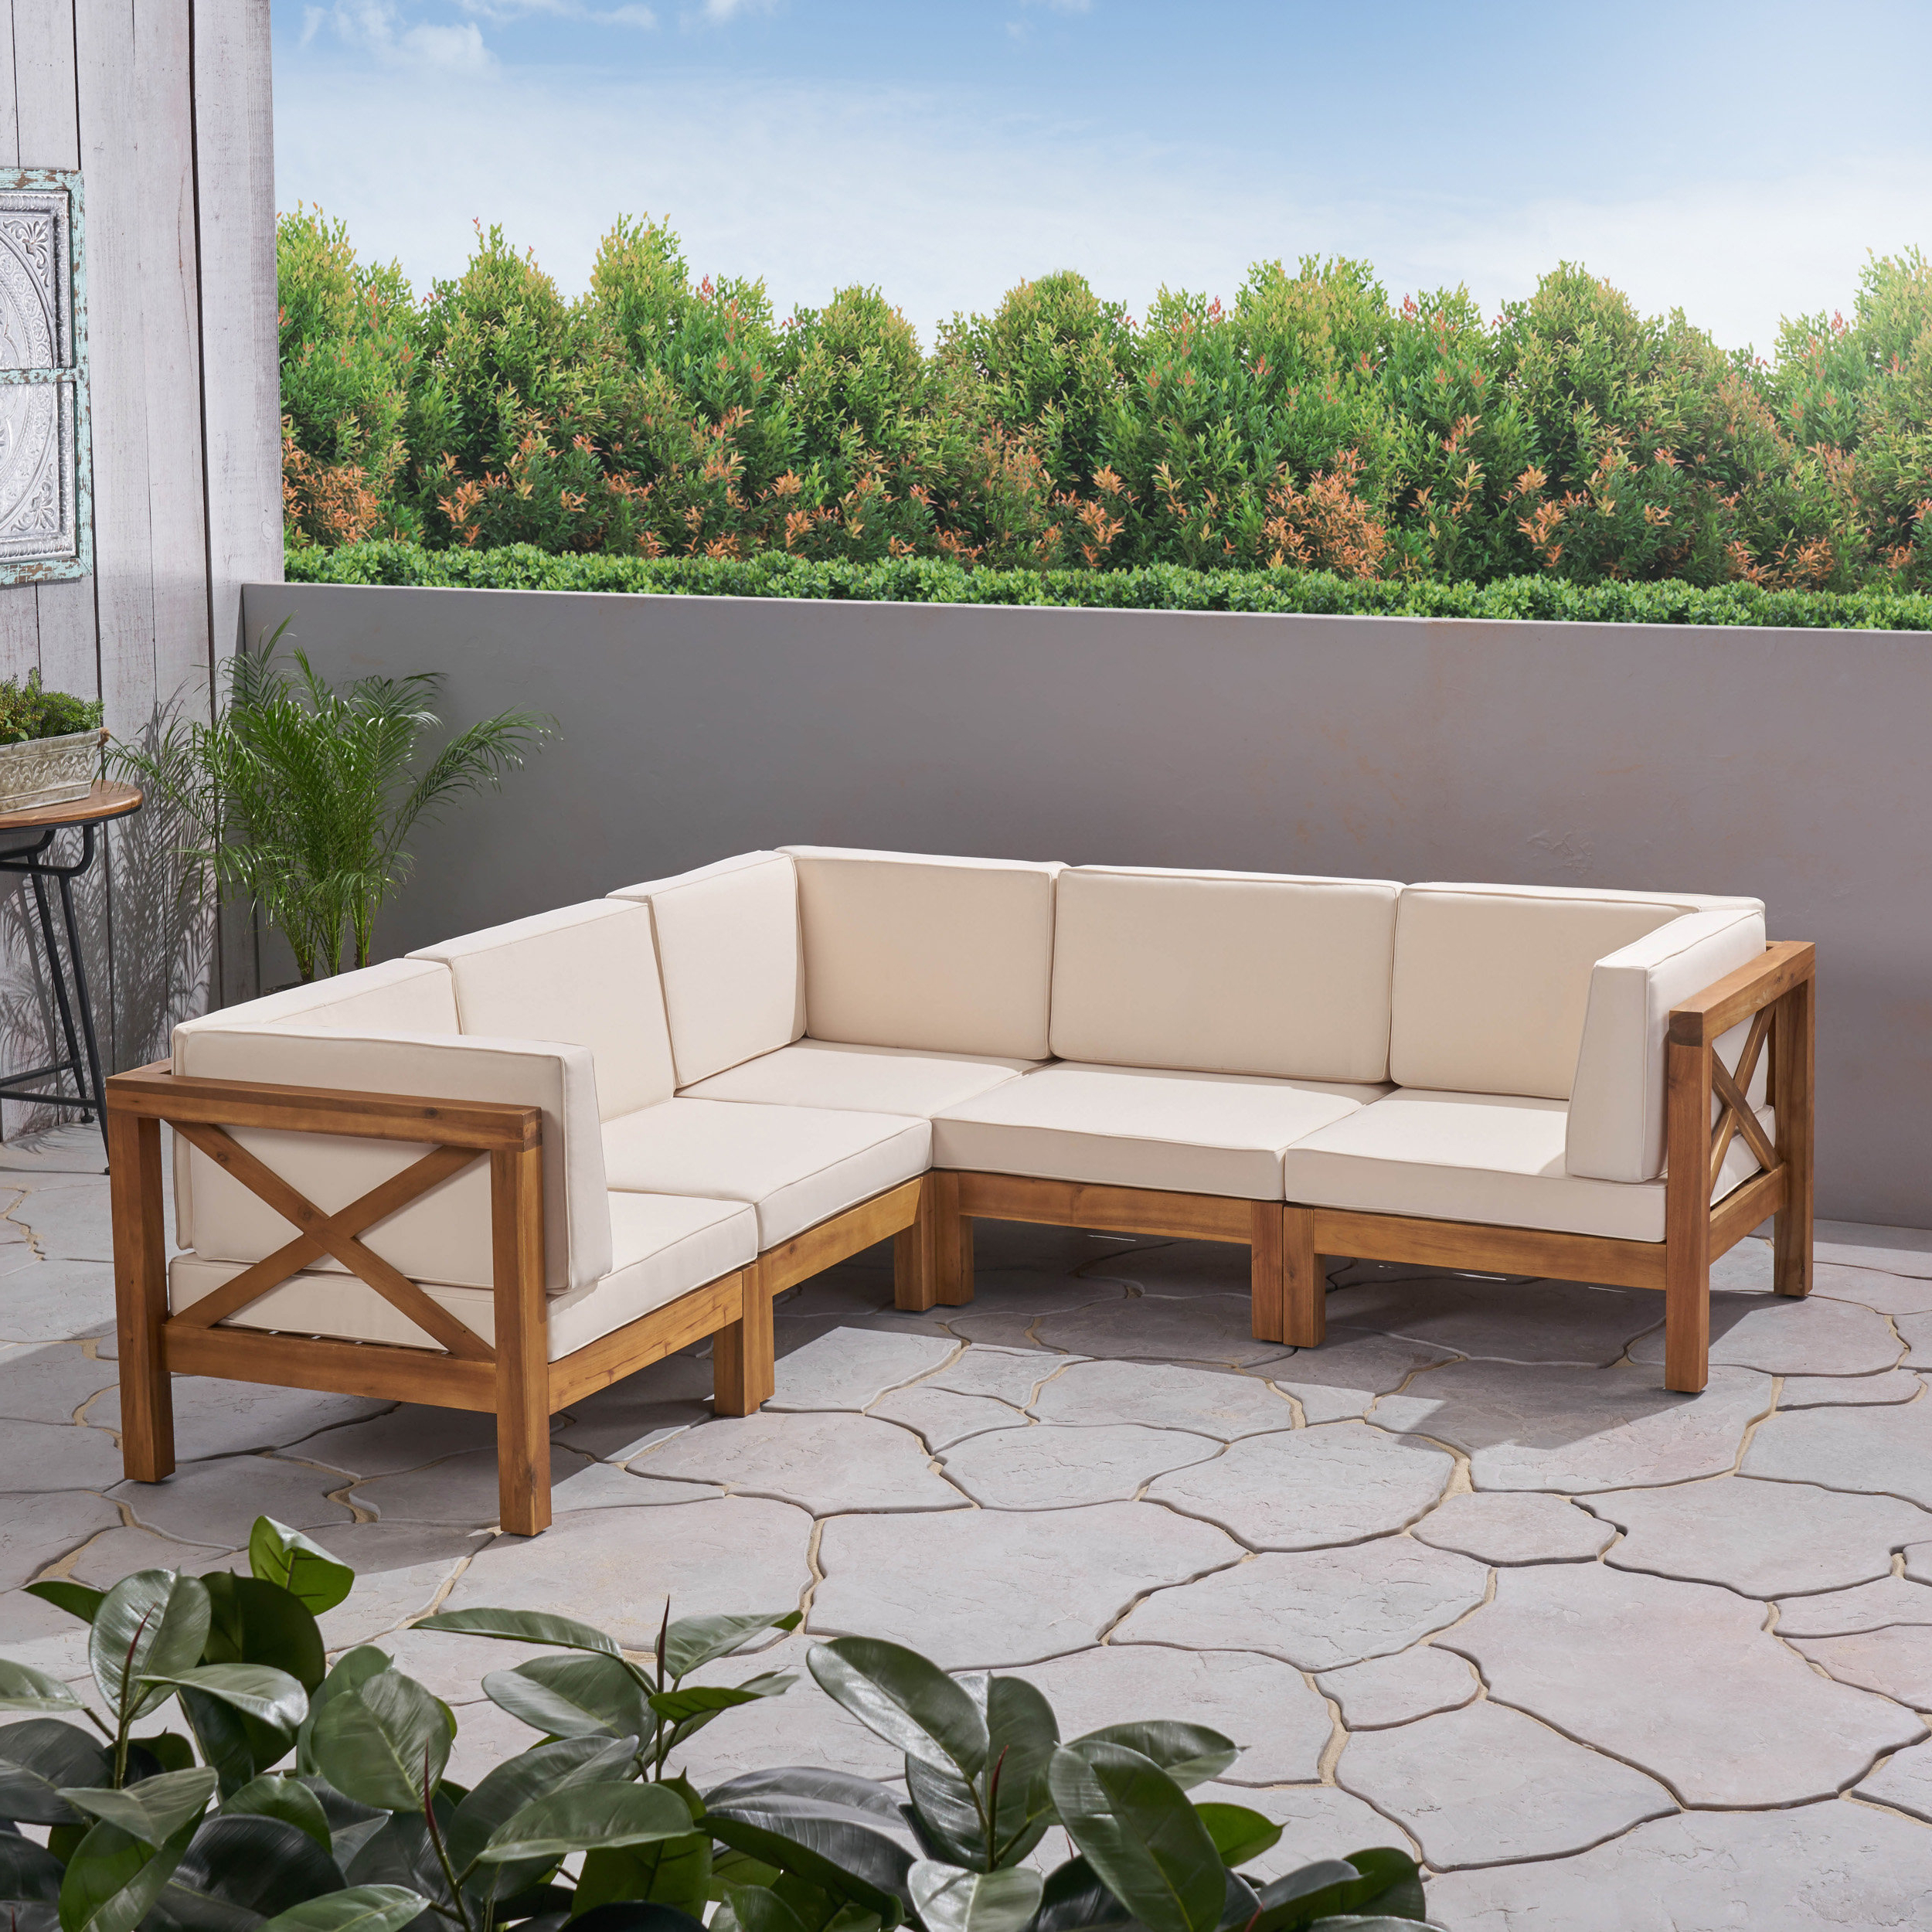 Ellison Patio Sectionals With Cushions With Regard To Current Ellison Patio Sectional With Cushions (View 8 of 20)